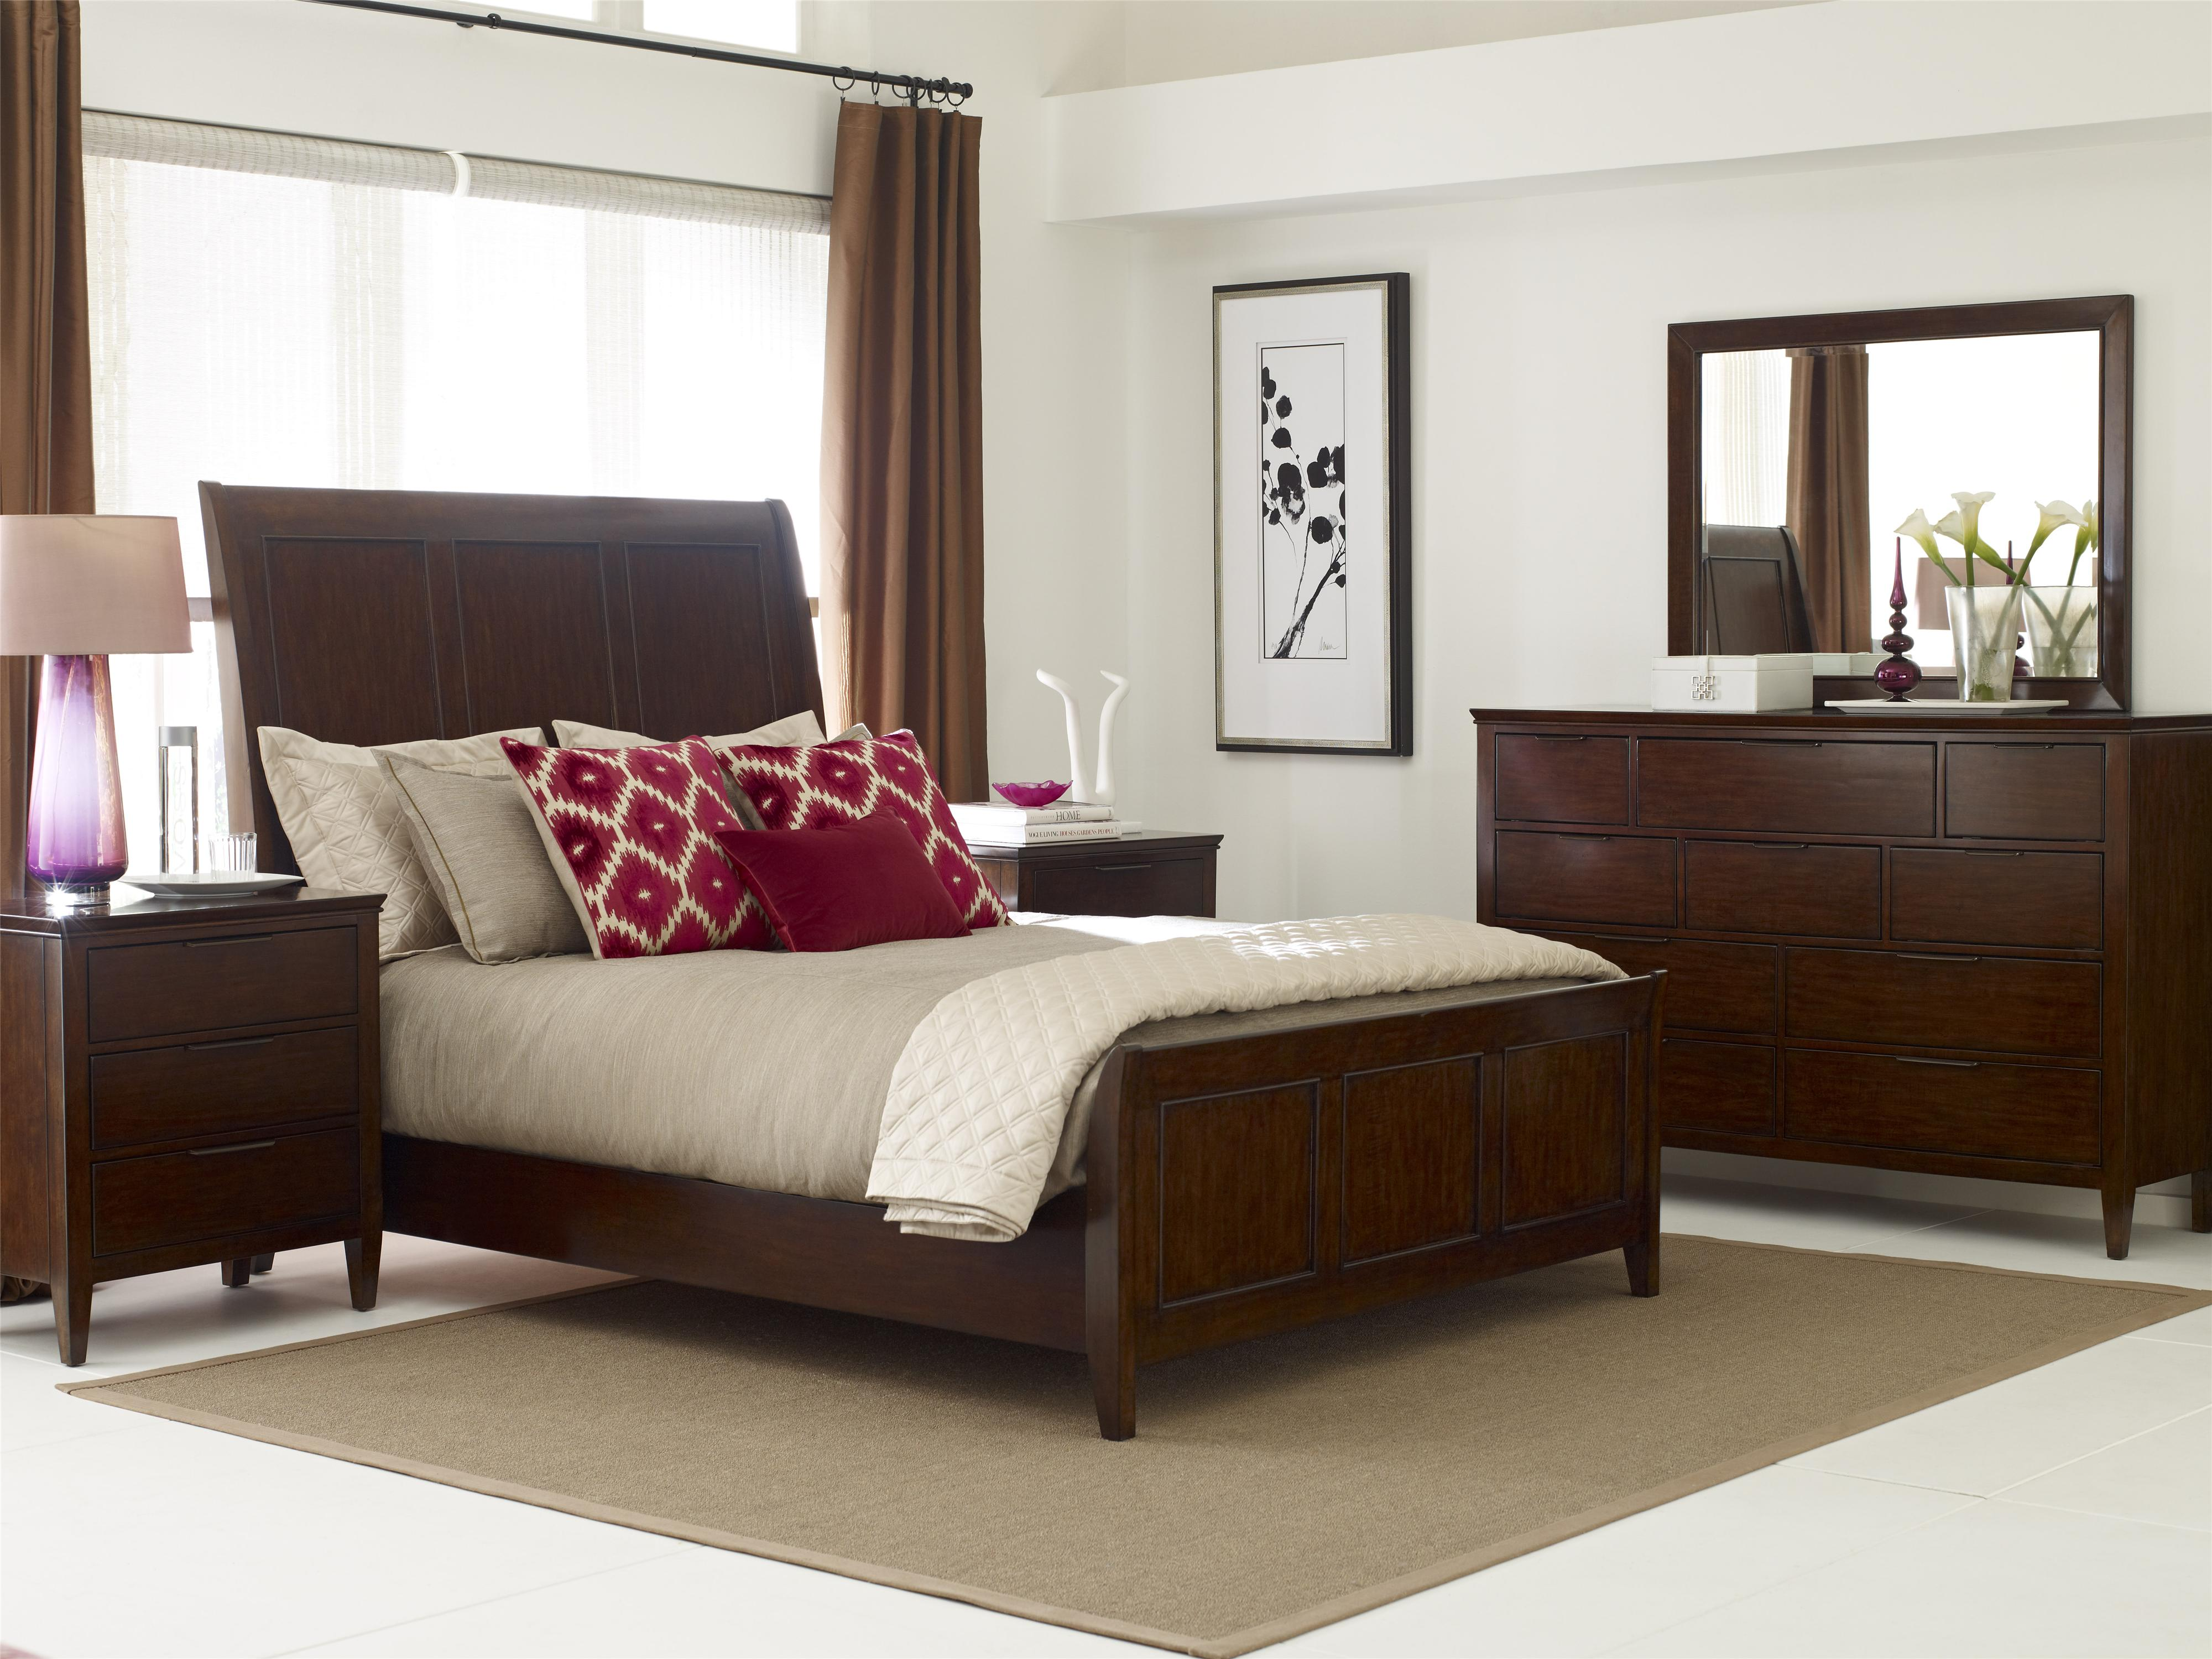 Sleigh Bedroom Furniture Sets Caris Queen Sleigh Bed By Kincaid Furniture Wolf And Gardiner